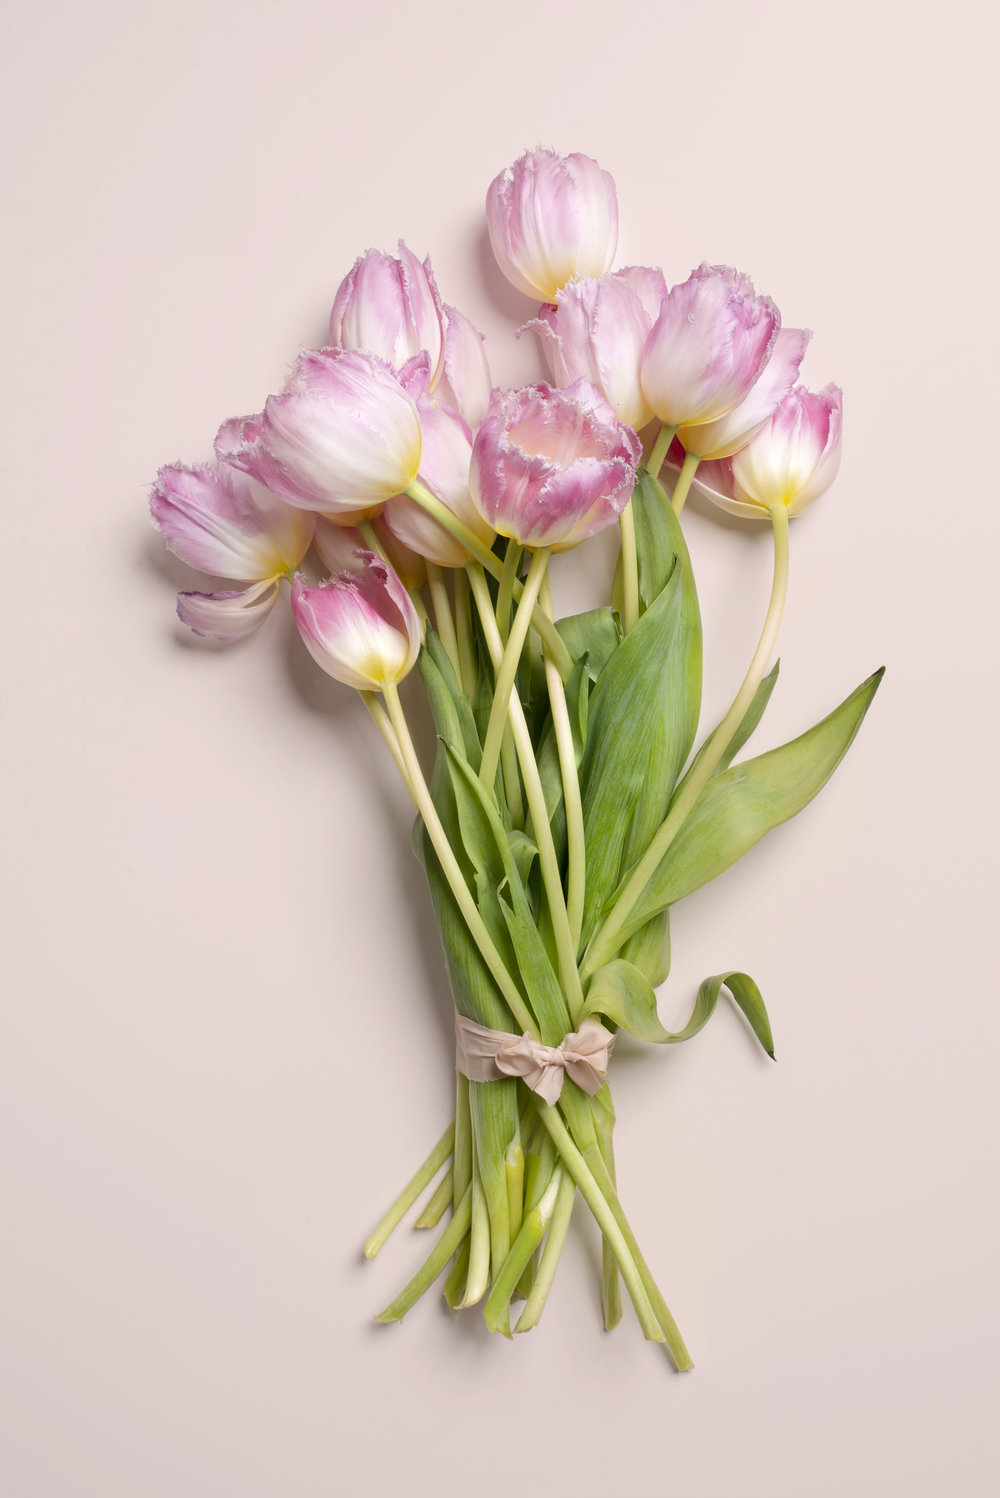 Pink Tulips on P Bckgr.jpg